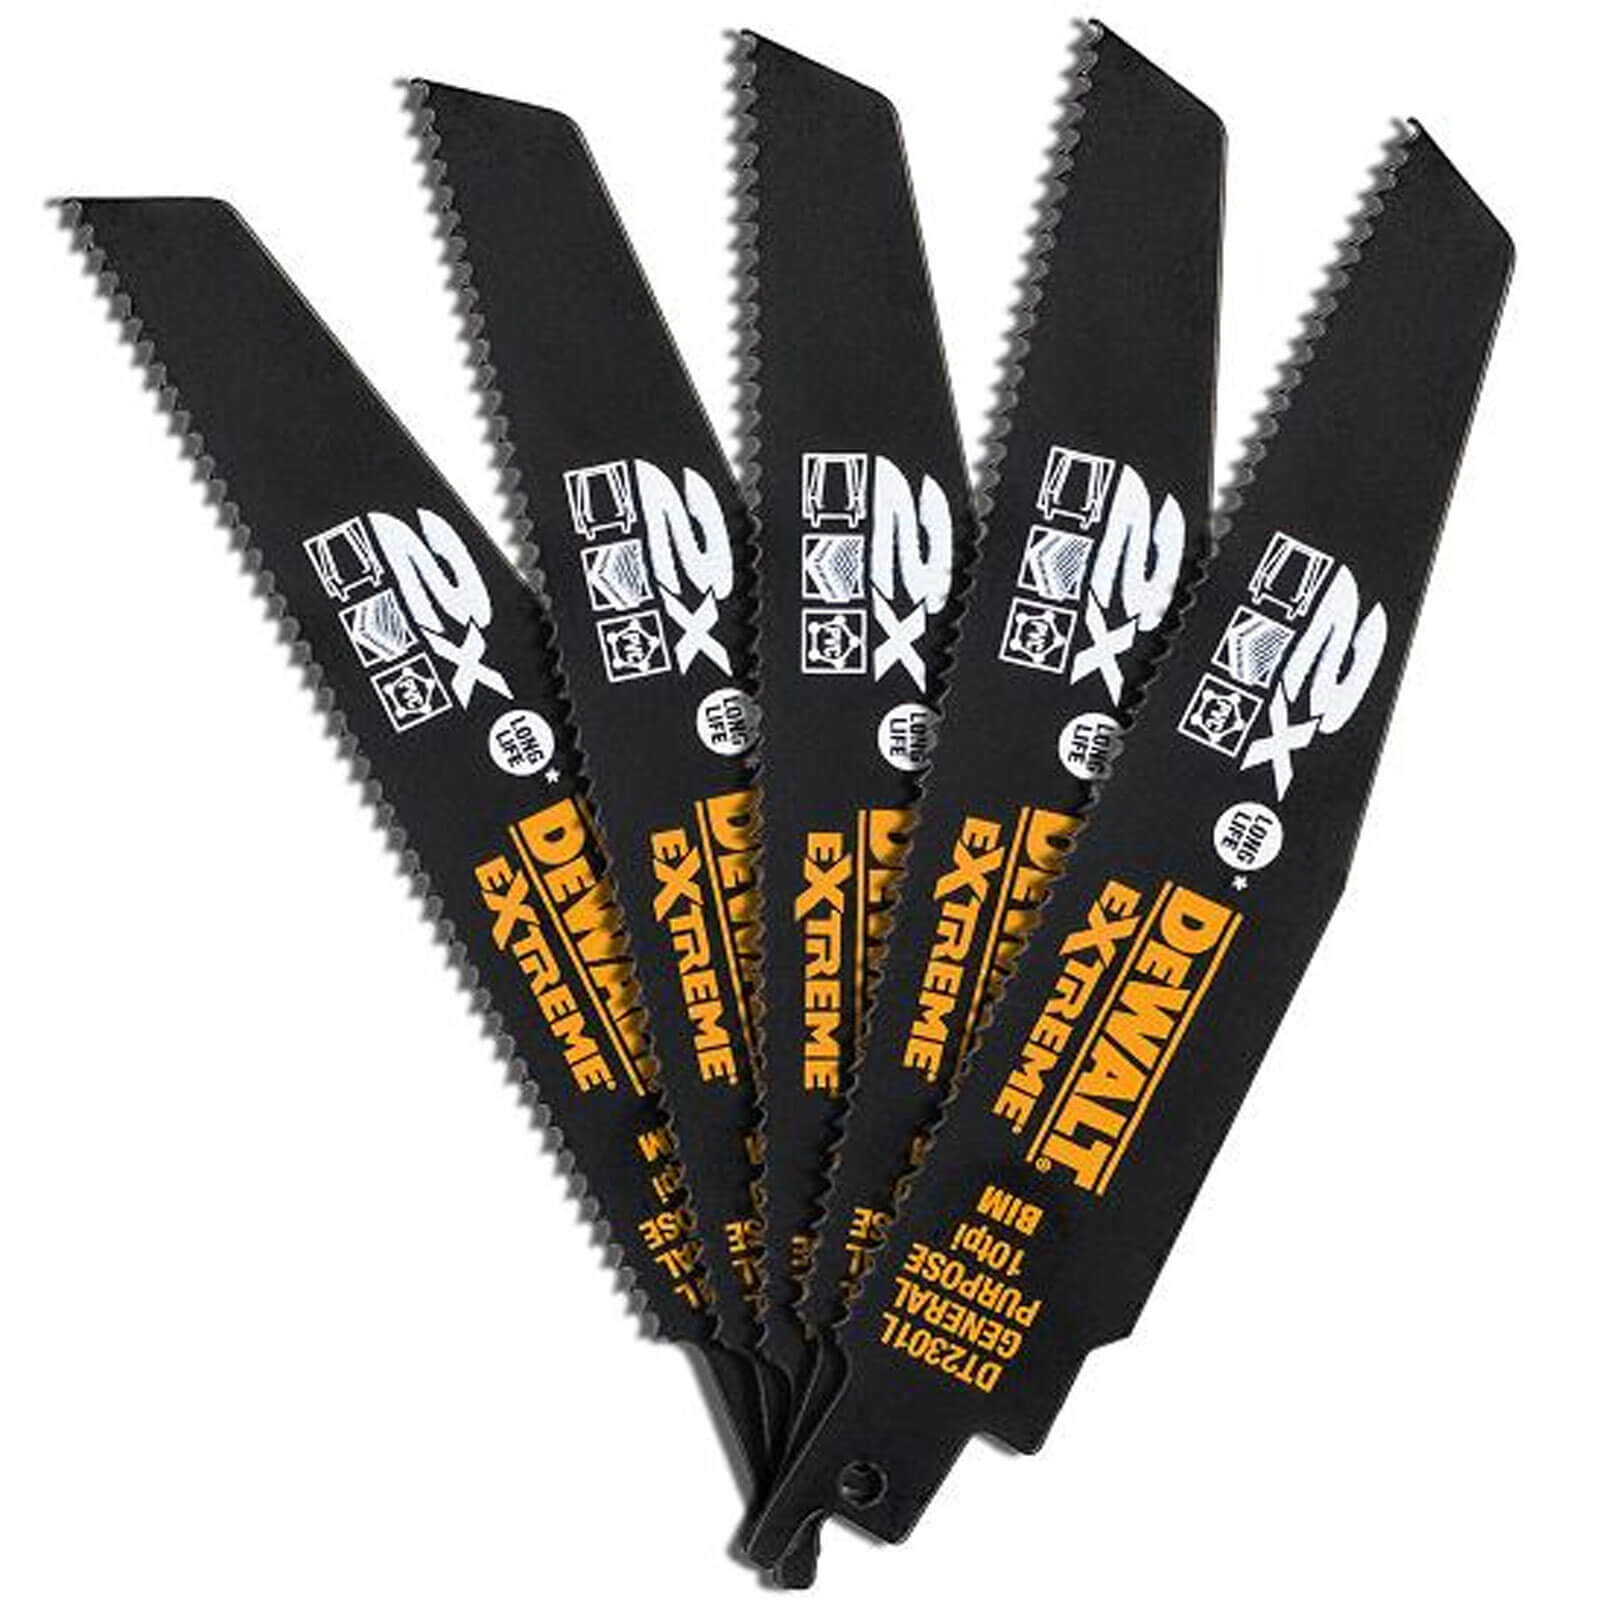 Image of DeWalt Extreme 2X Life General Purpose Reciprocating Saw Blades 152mm Pack of 5